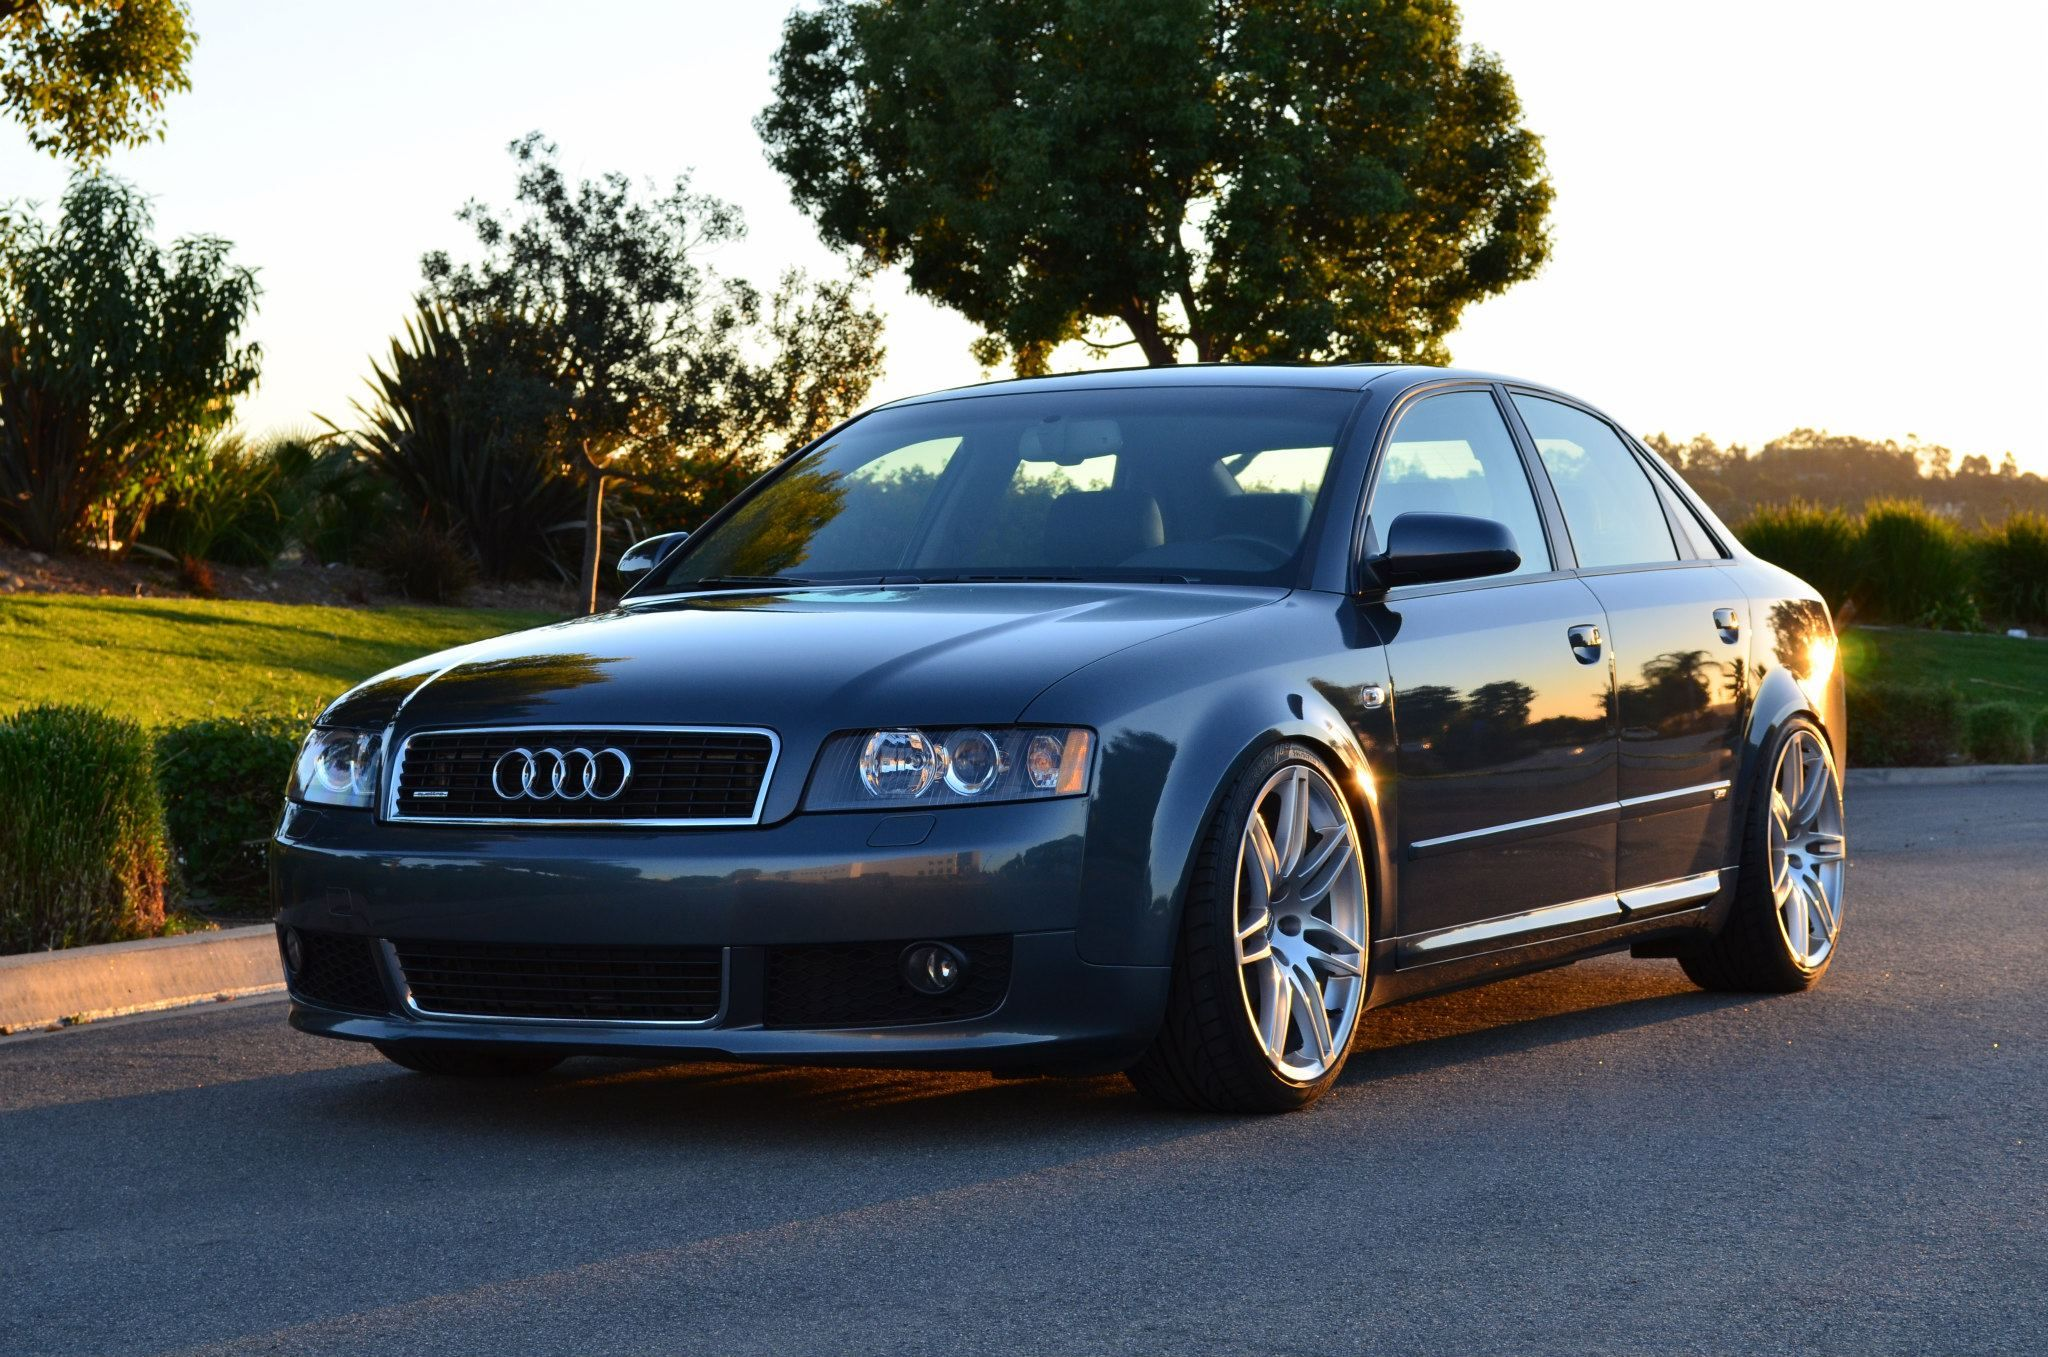 audi s4 b6 slammed google search audi s4 pinterest. Black Bedroom Furniture Sets. Home Design Ideas